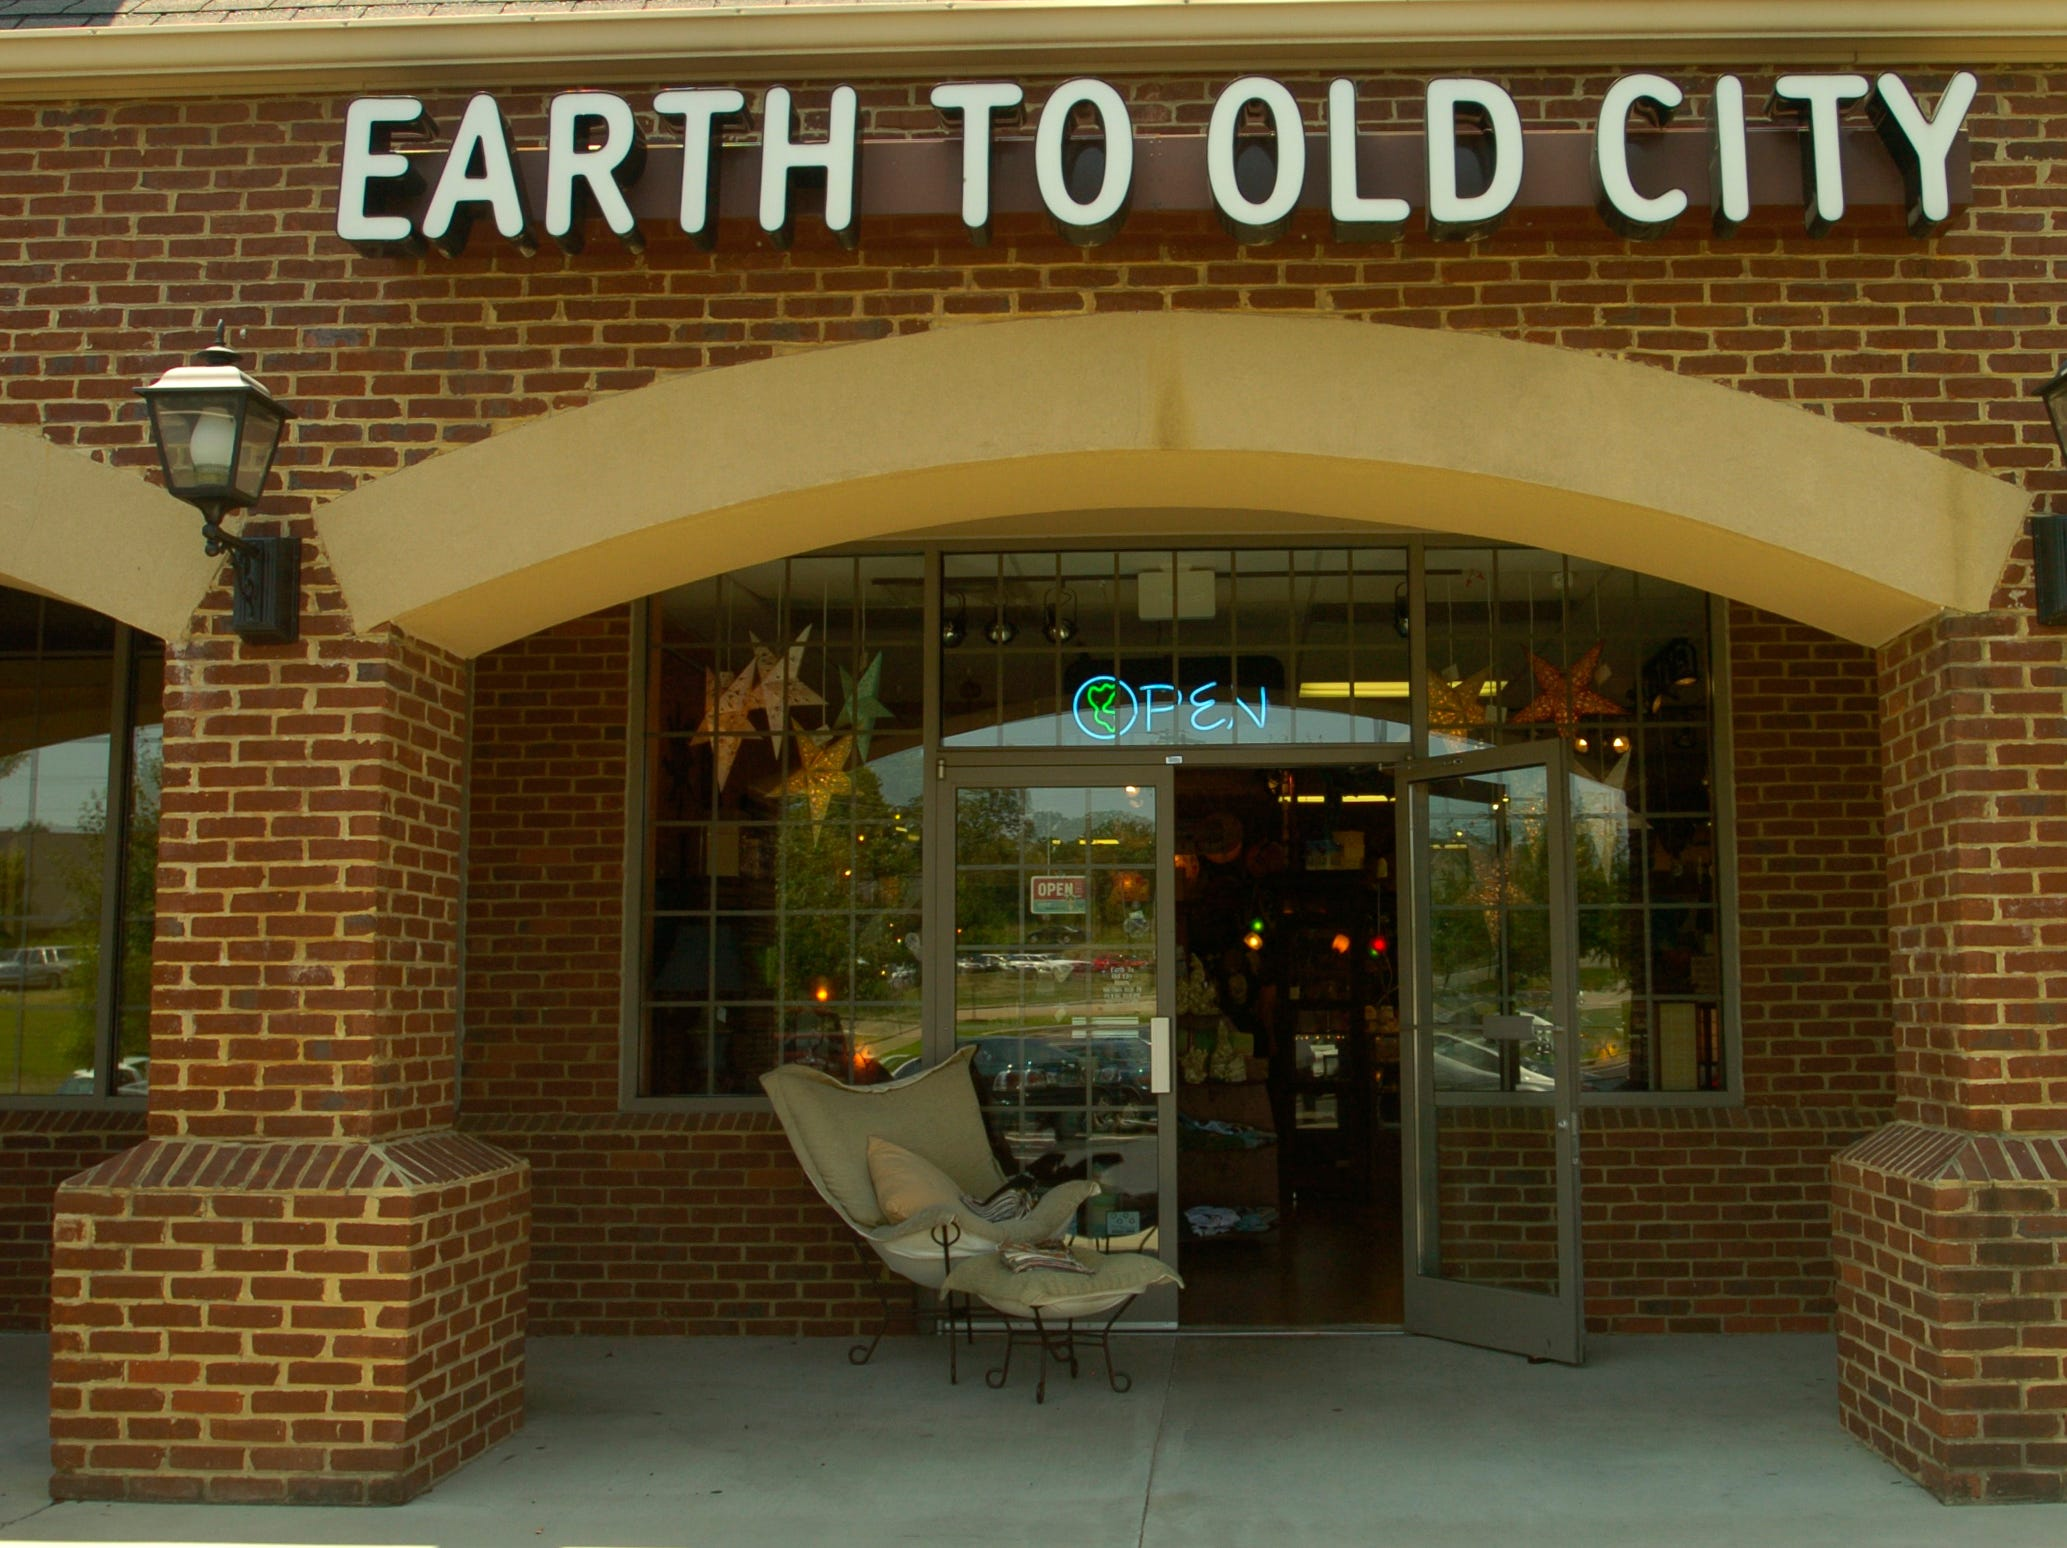 Earth to Old City in Farragut. 7/17/06